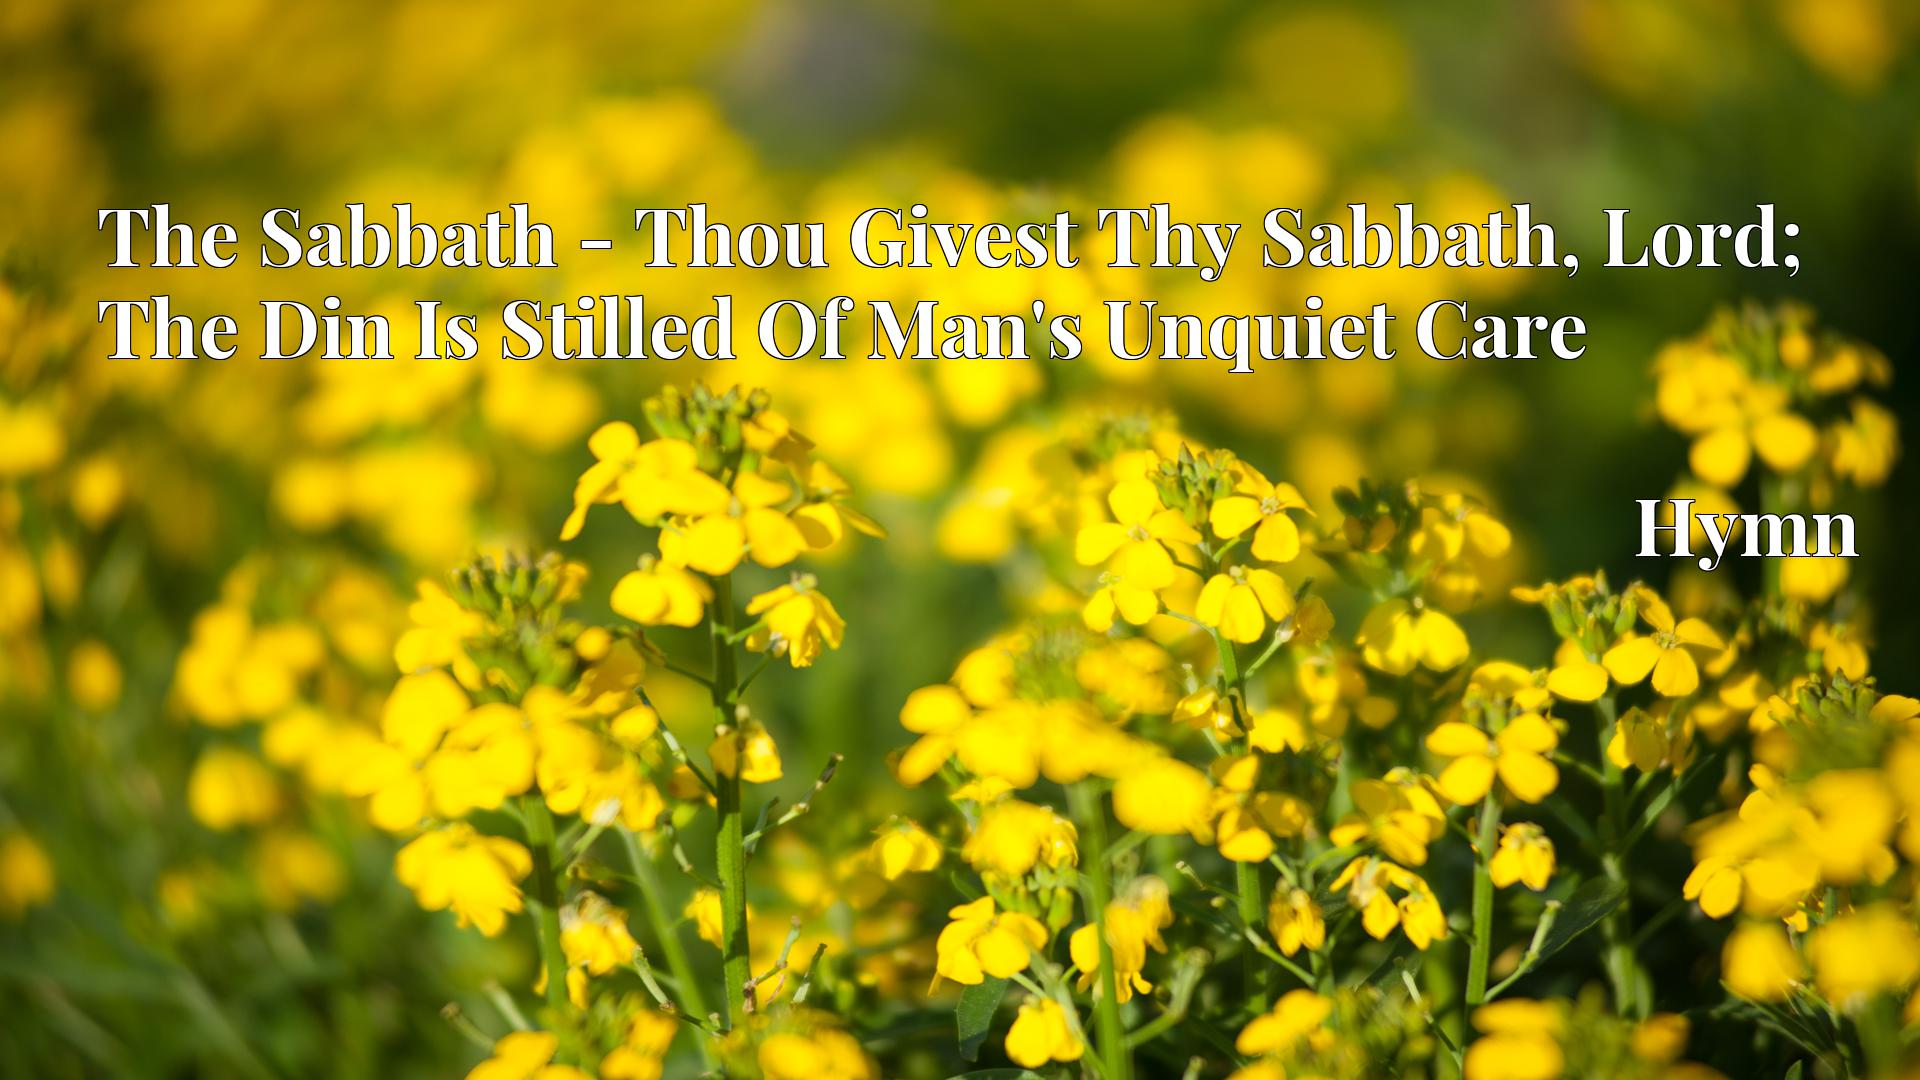 The Sabbath - Thou Givest Thy Sabbath, Lord; The Din Is Stilled Of Man's Unquiet Care - Hymn